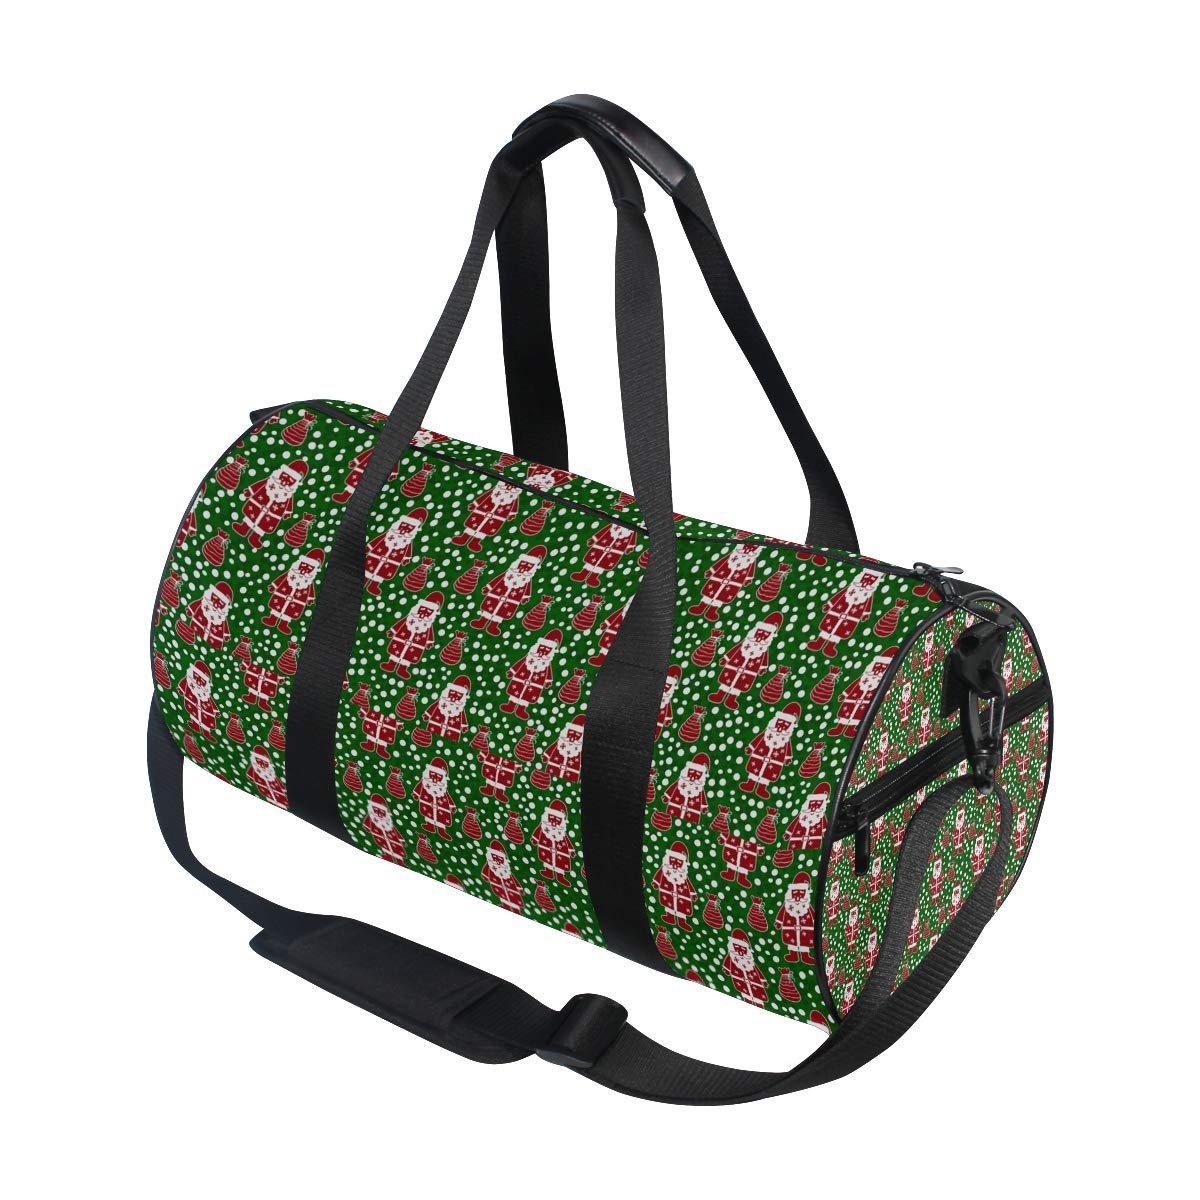 Santa Claus In The Green Area Popular casual fitness bag,Non-Slip Wearable Crossbody Bag Waterproof Shoulder Bag.